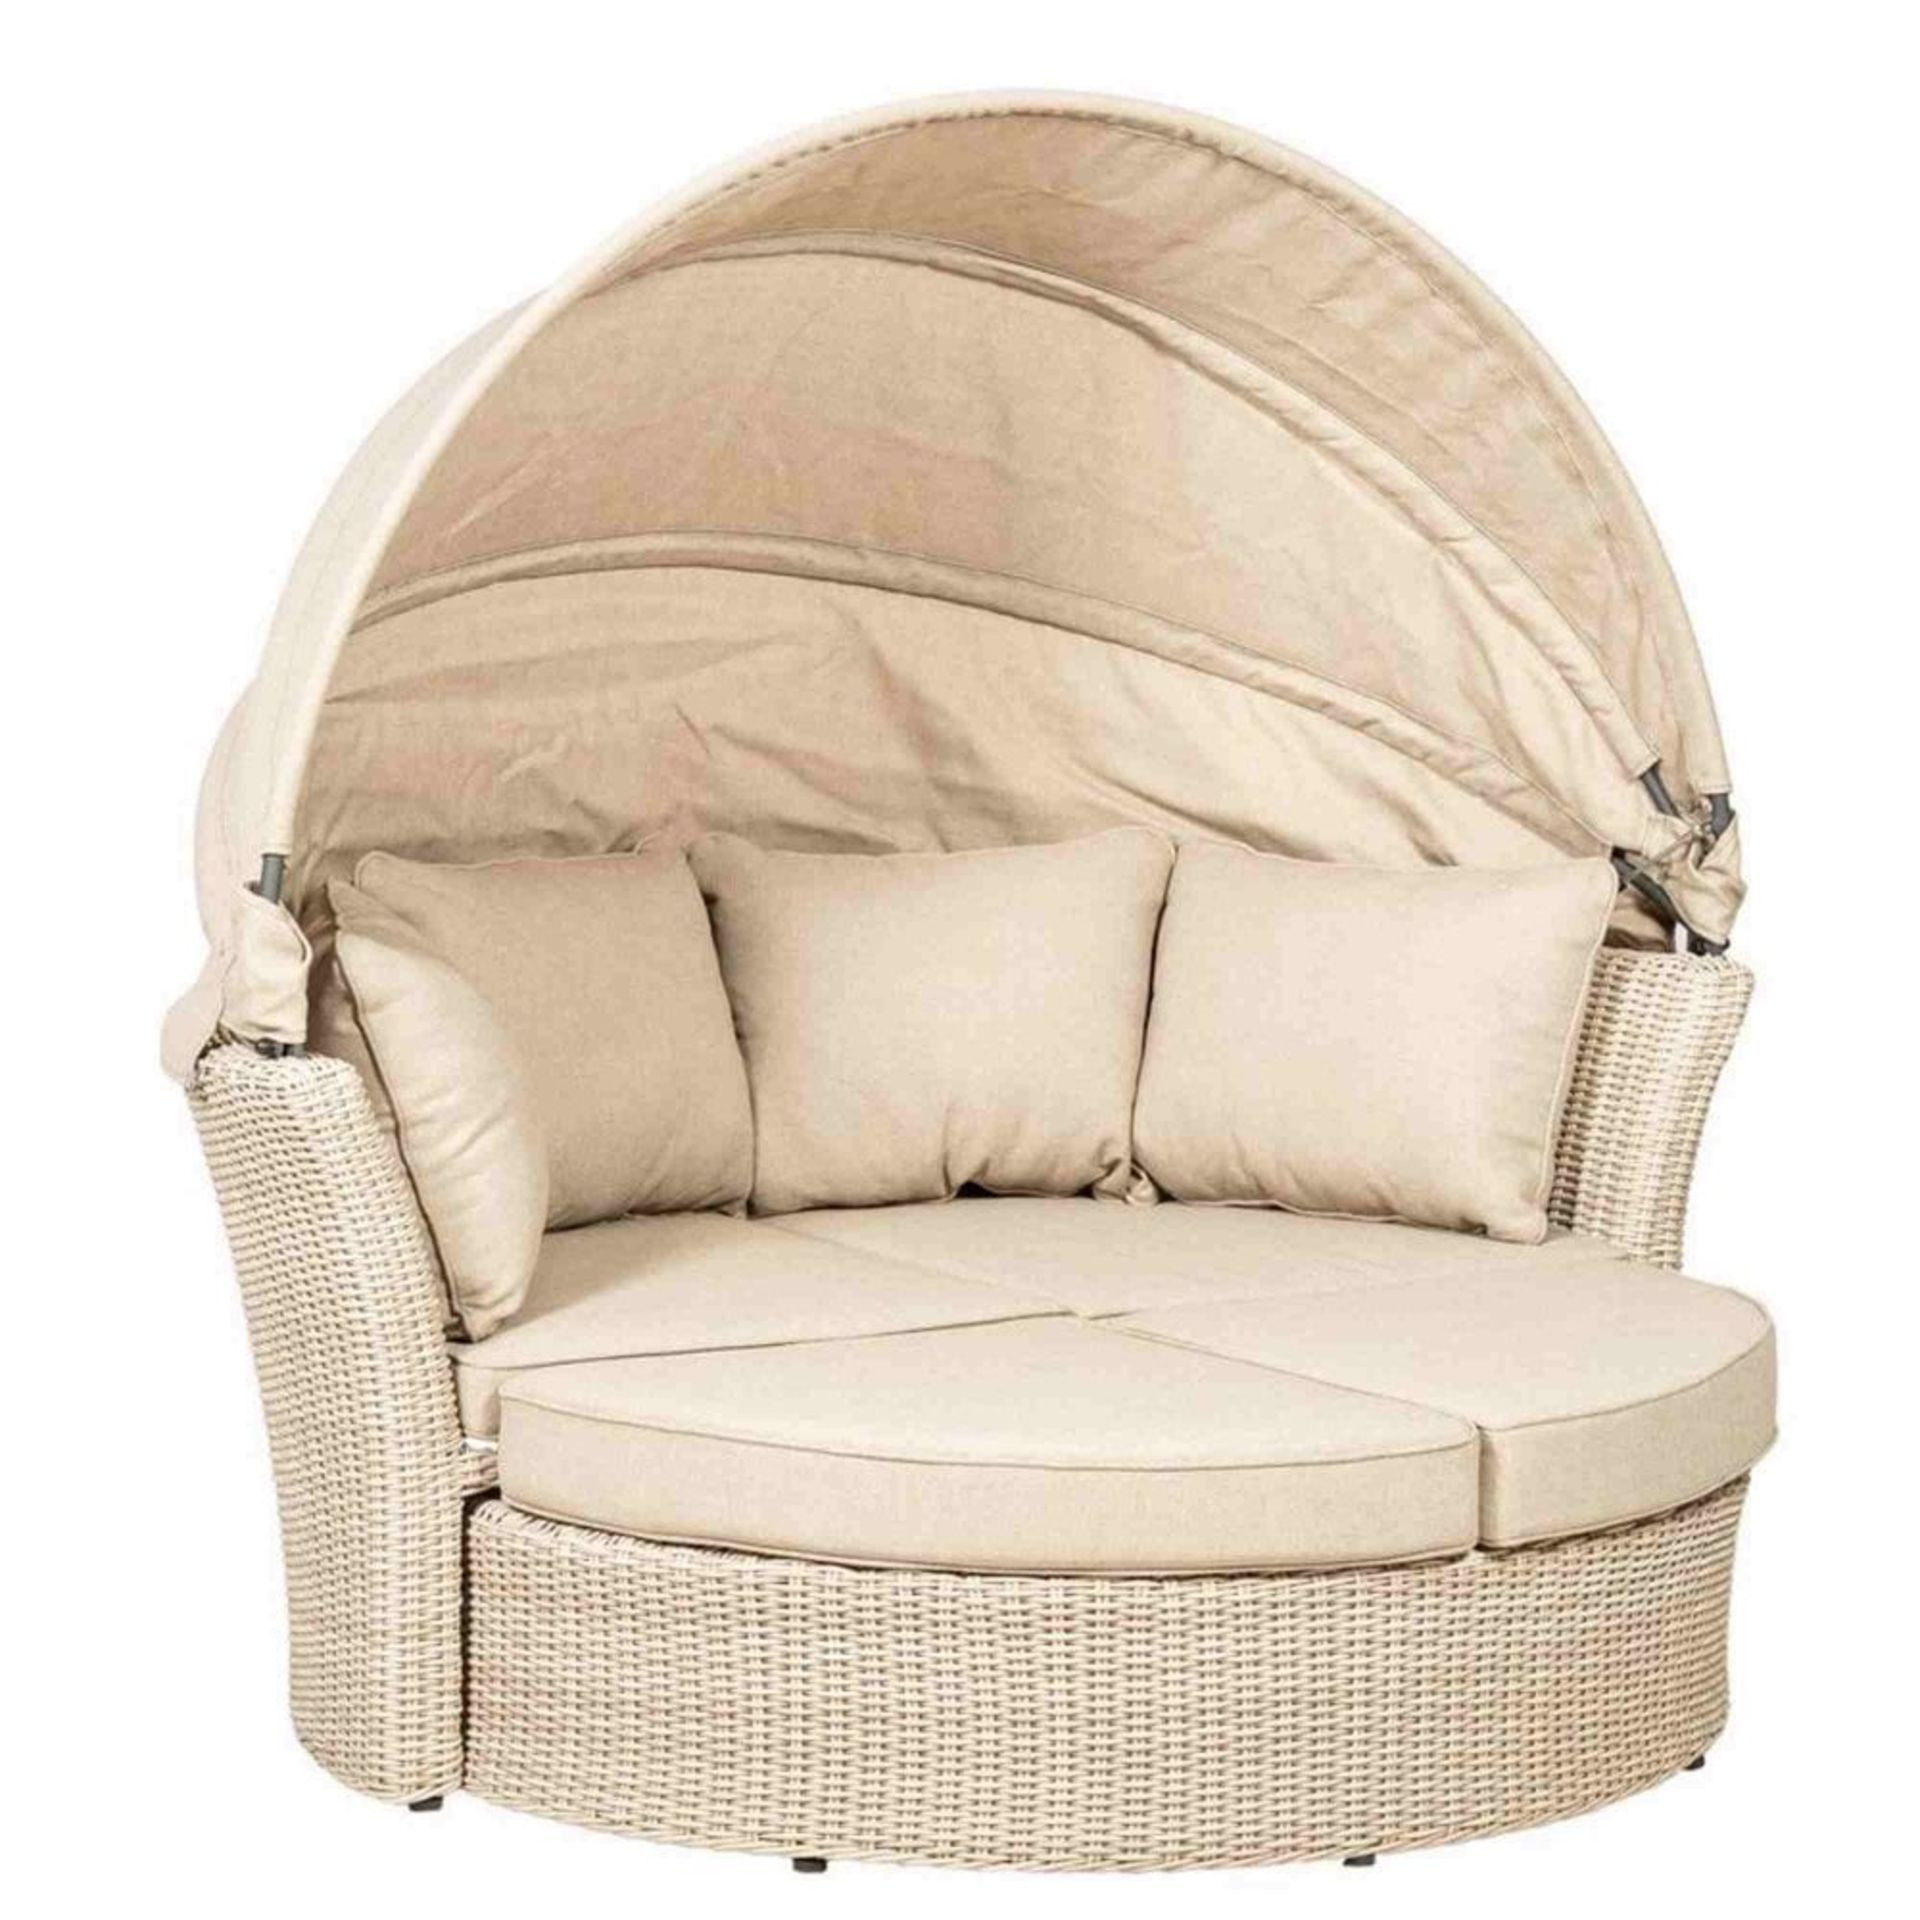 """Lot 32045 - V Brand New Luxury Circular Day Bed With Retractable """"Half Moon"""" Canopy & Weather Proof All Year"""